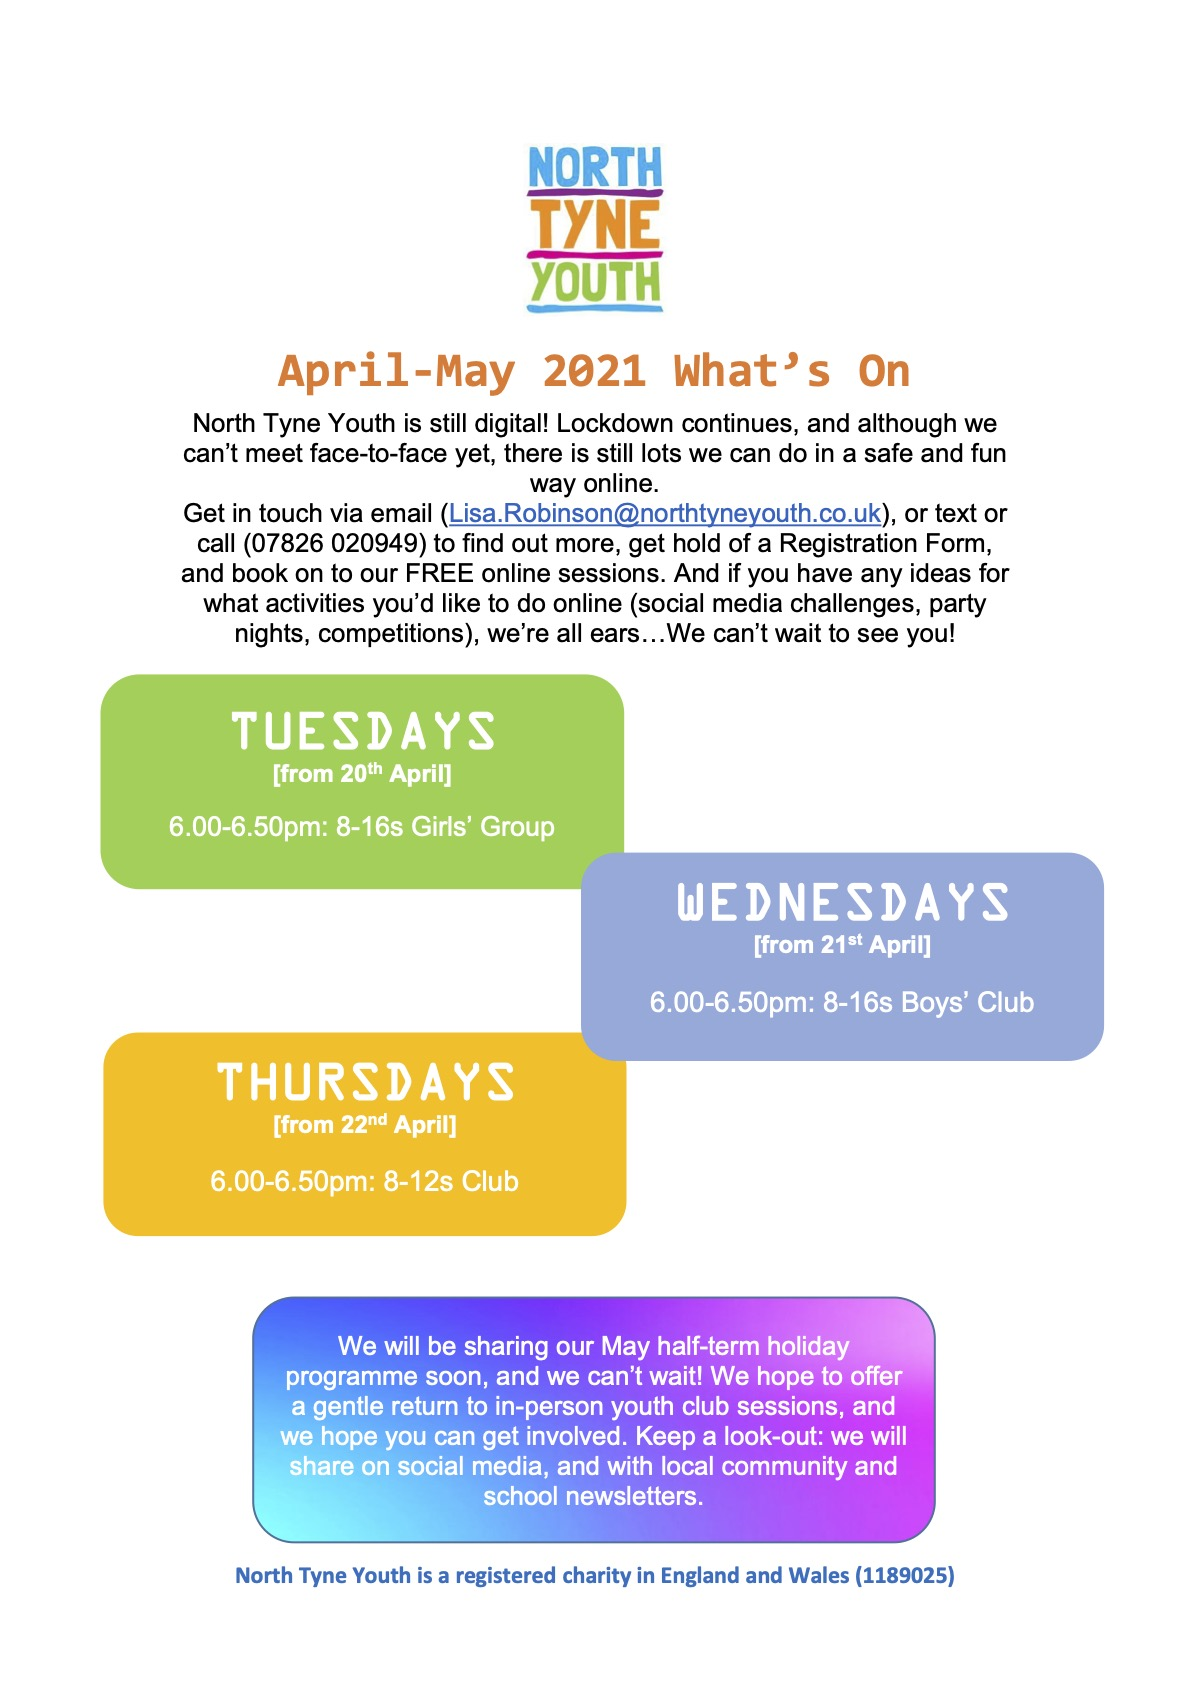 north tyne youth what's on april/may 2021